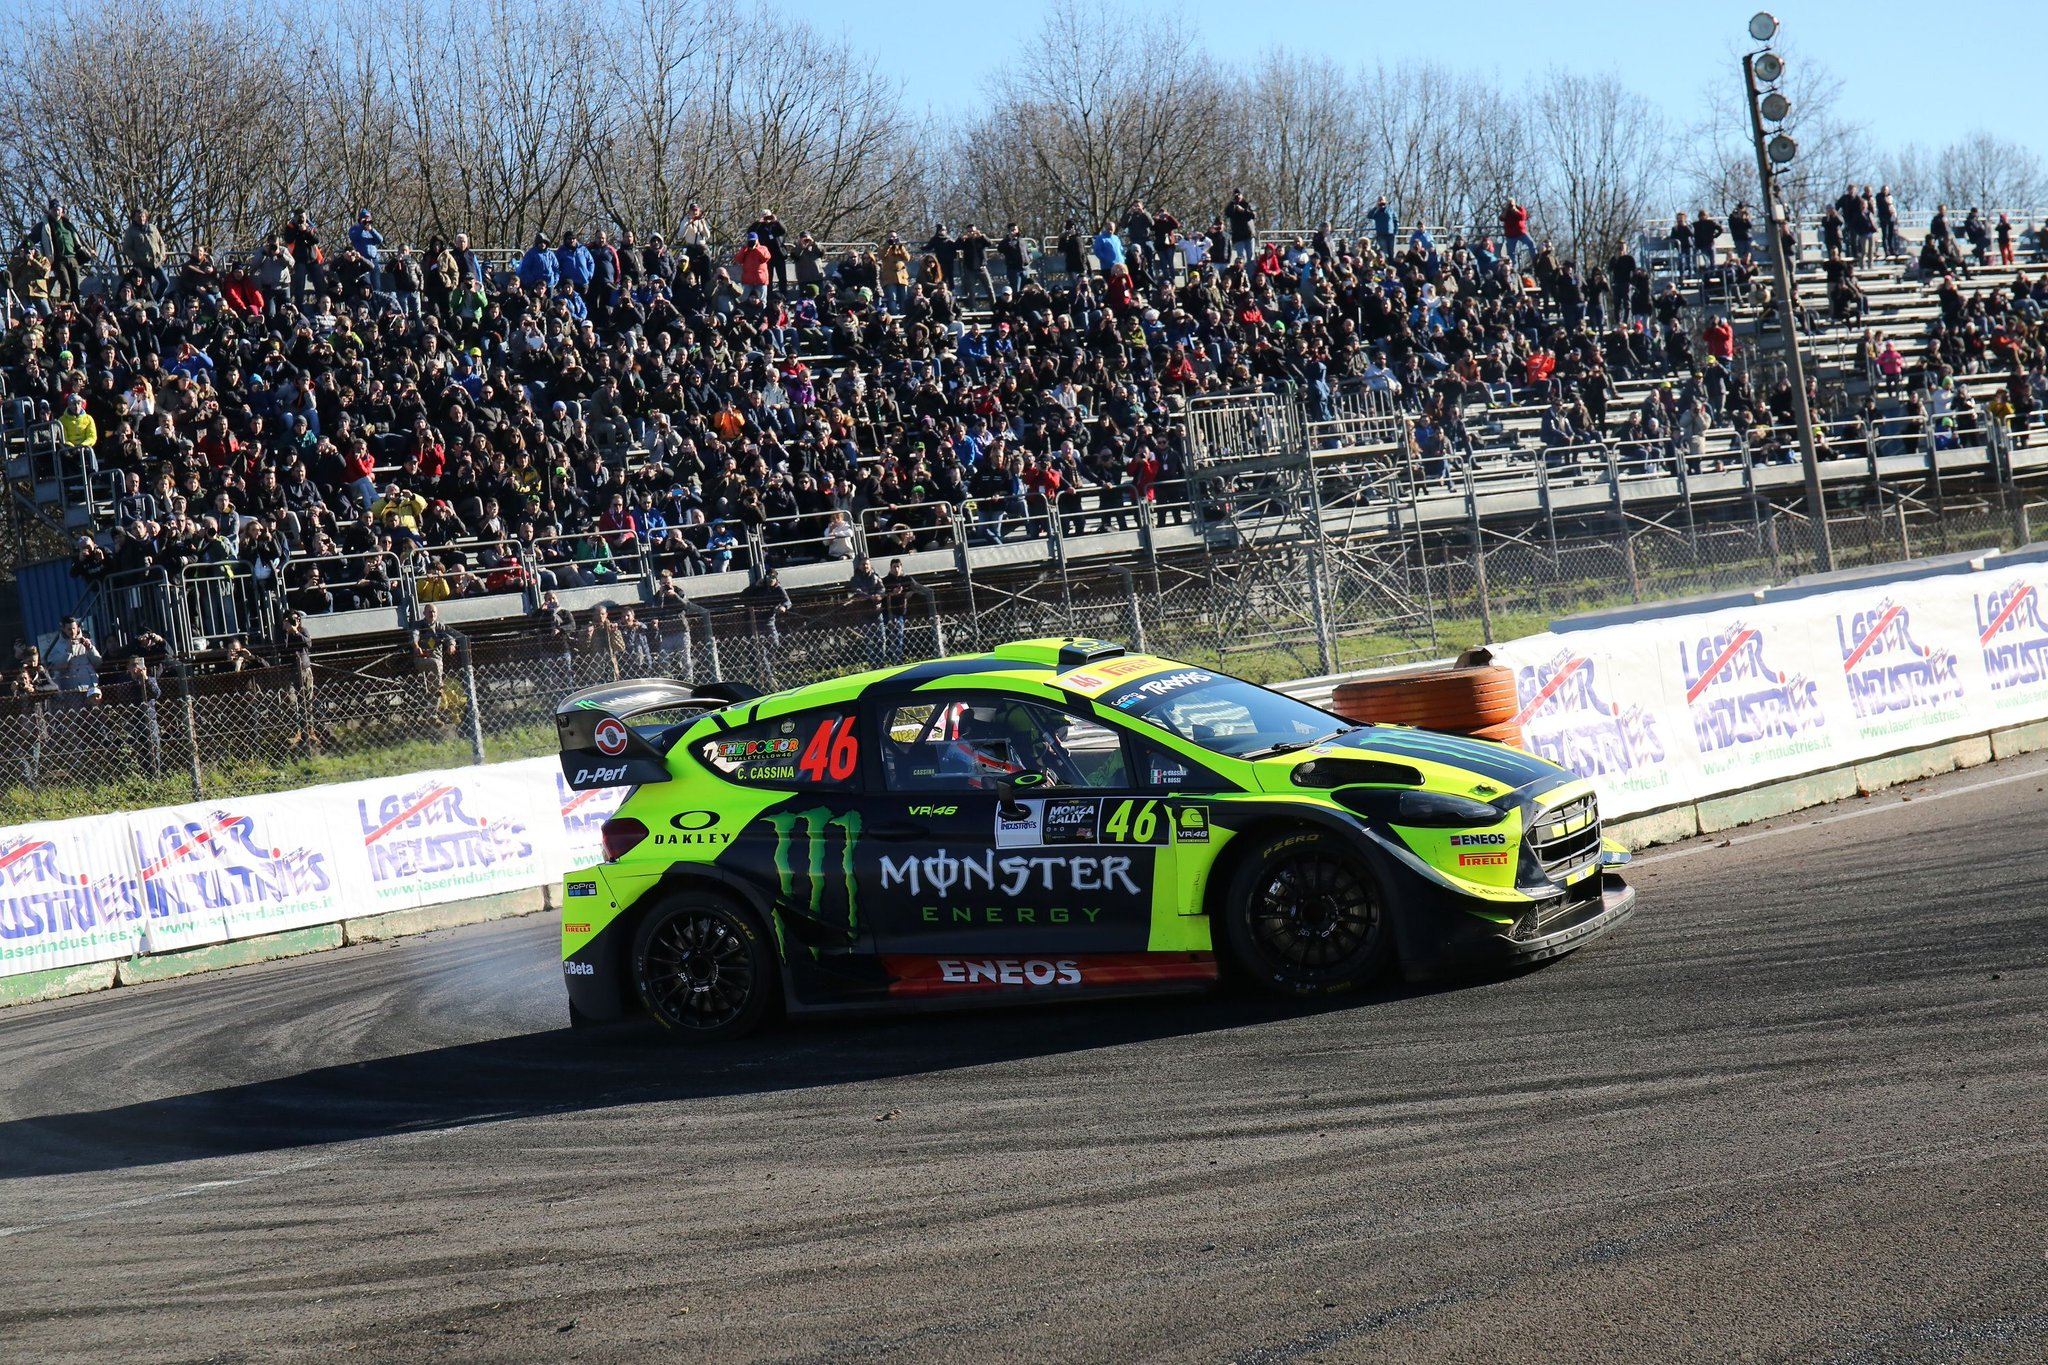 Monza Rally Show 2018 - Página 2 Dt6t1mZW0AAaGIt